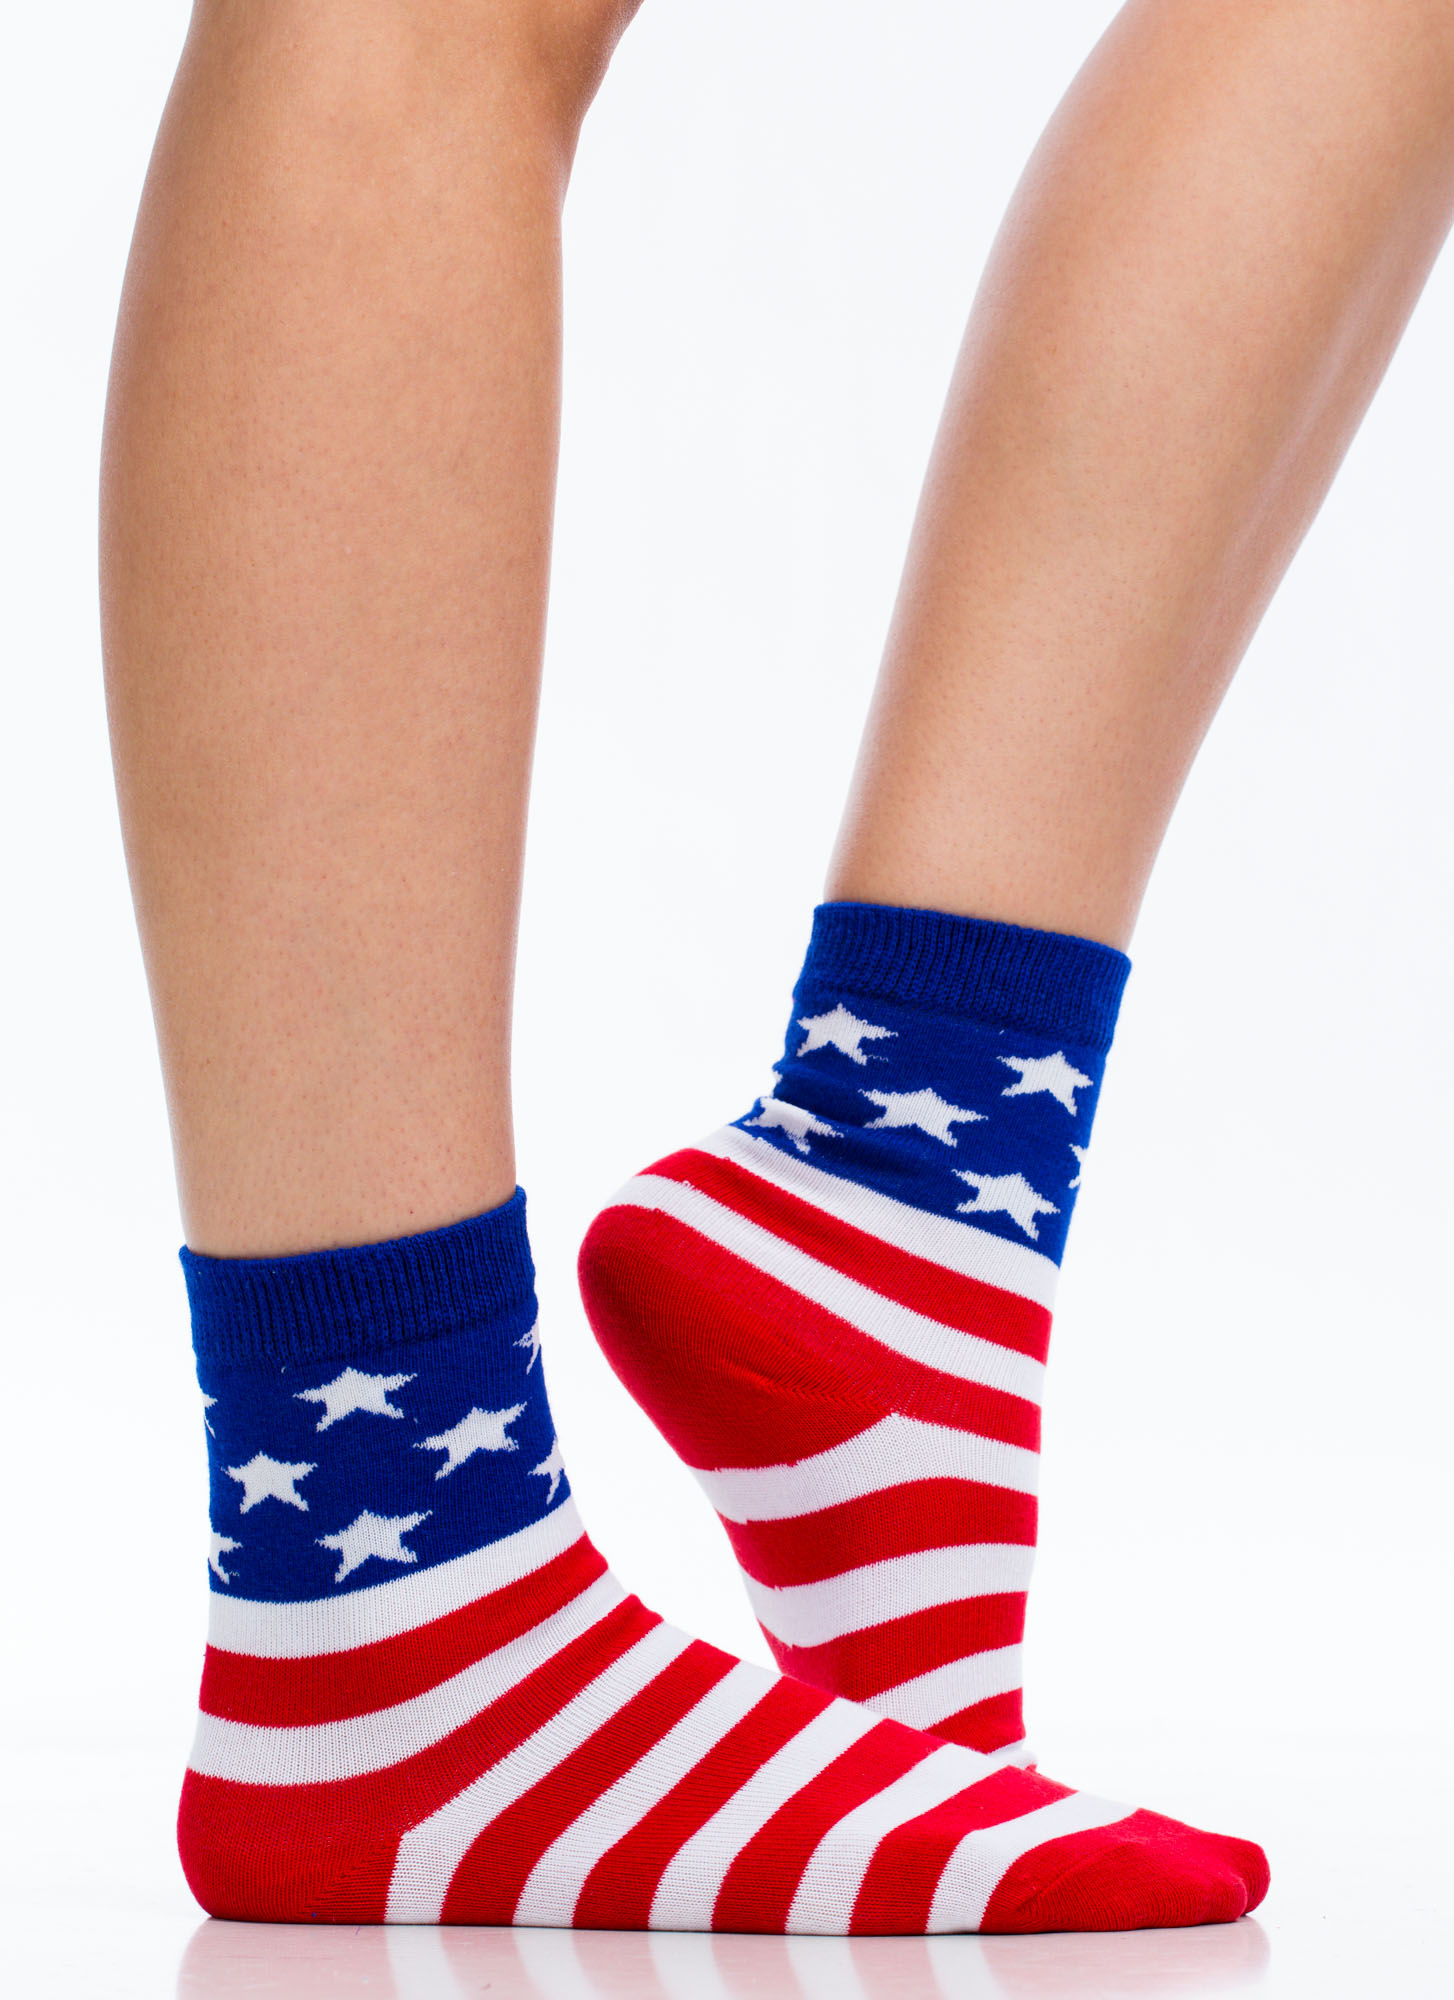 American Flag Ankle Socks REDBLUE